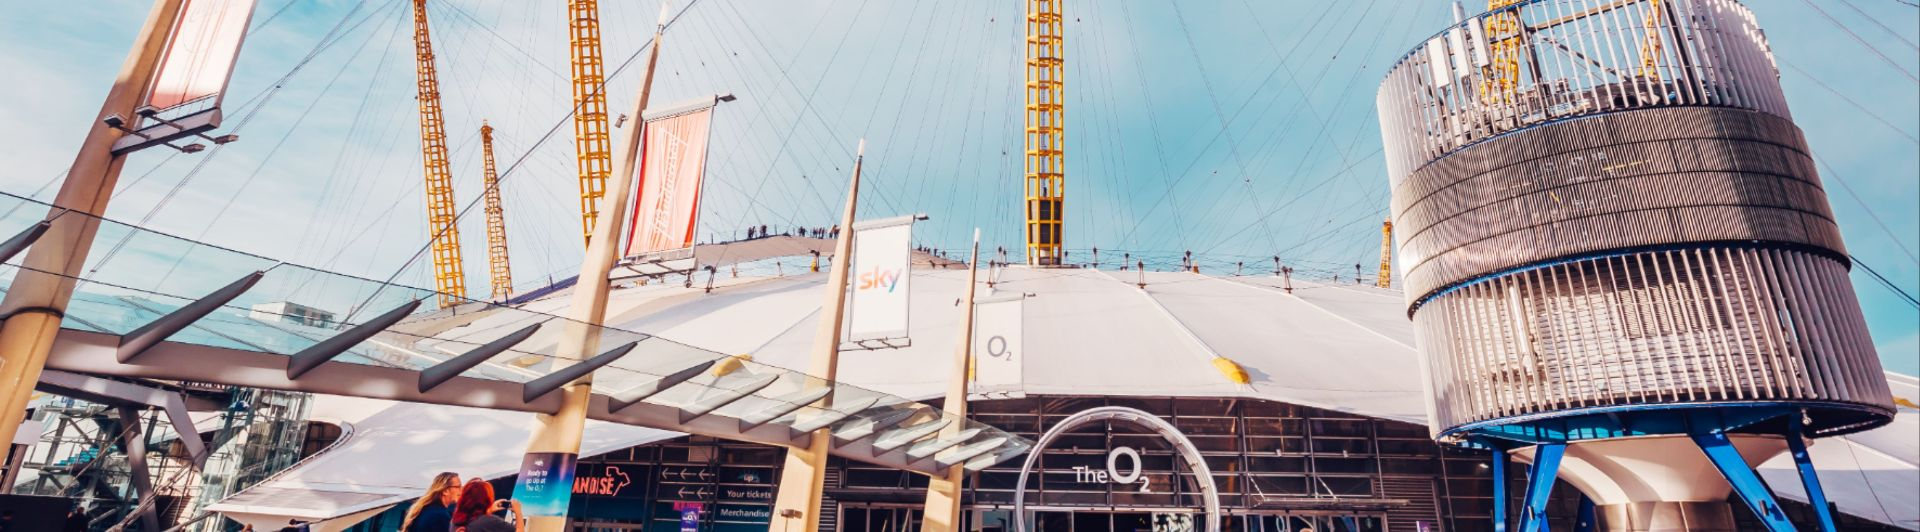 The O2 - Advertising Spaces - 24th October 2018 by Luke Dyson - IMG_1686.jpg